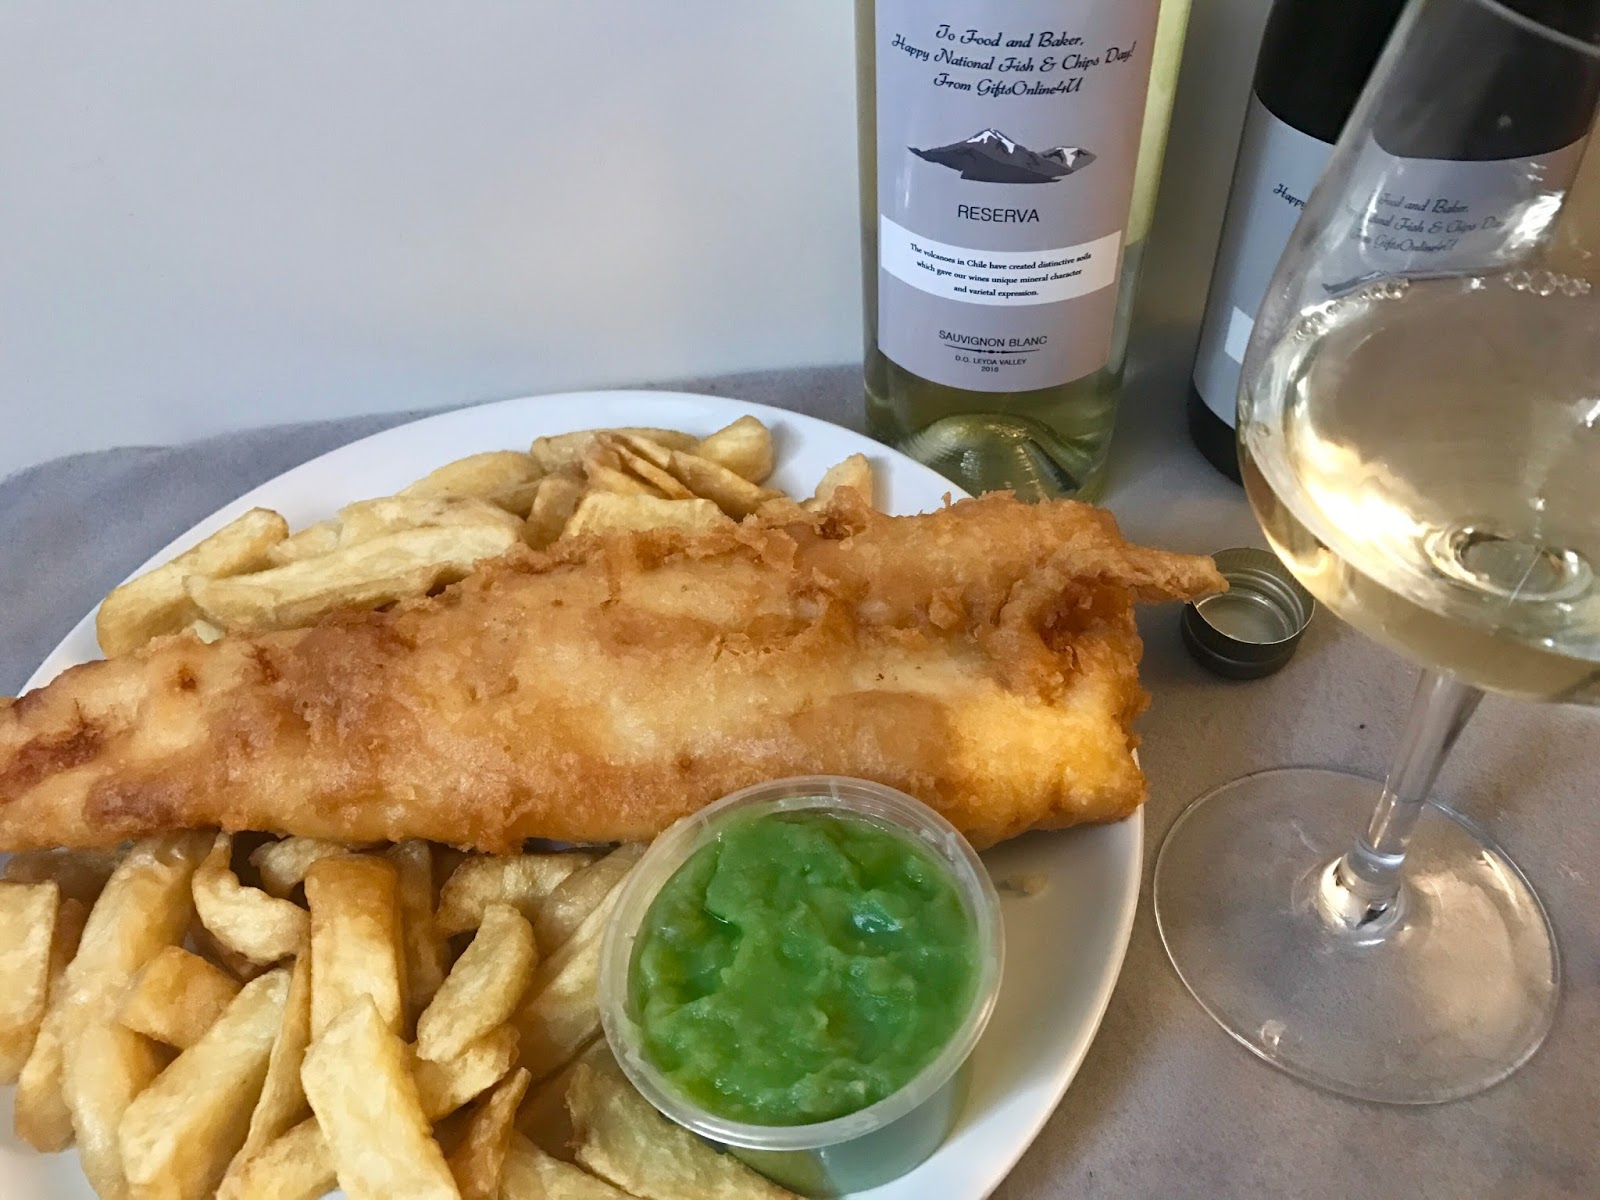 d267f19ebd6 Friday 1st June 2017 marked National Fish and Chip Day, and what better way  to celebrate that than having the largest cod and chips that the restaurant  can ...